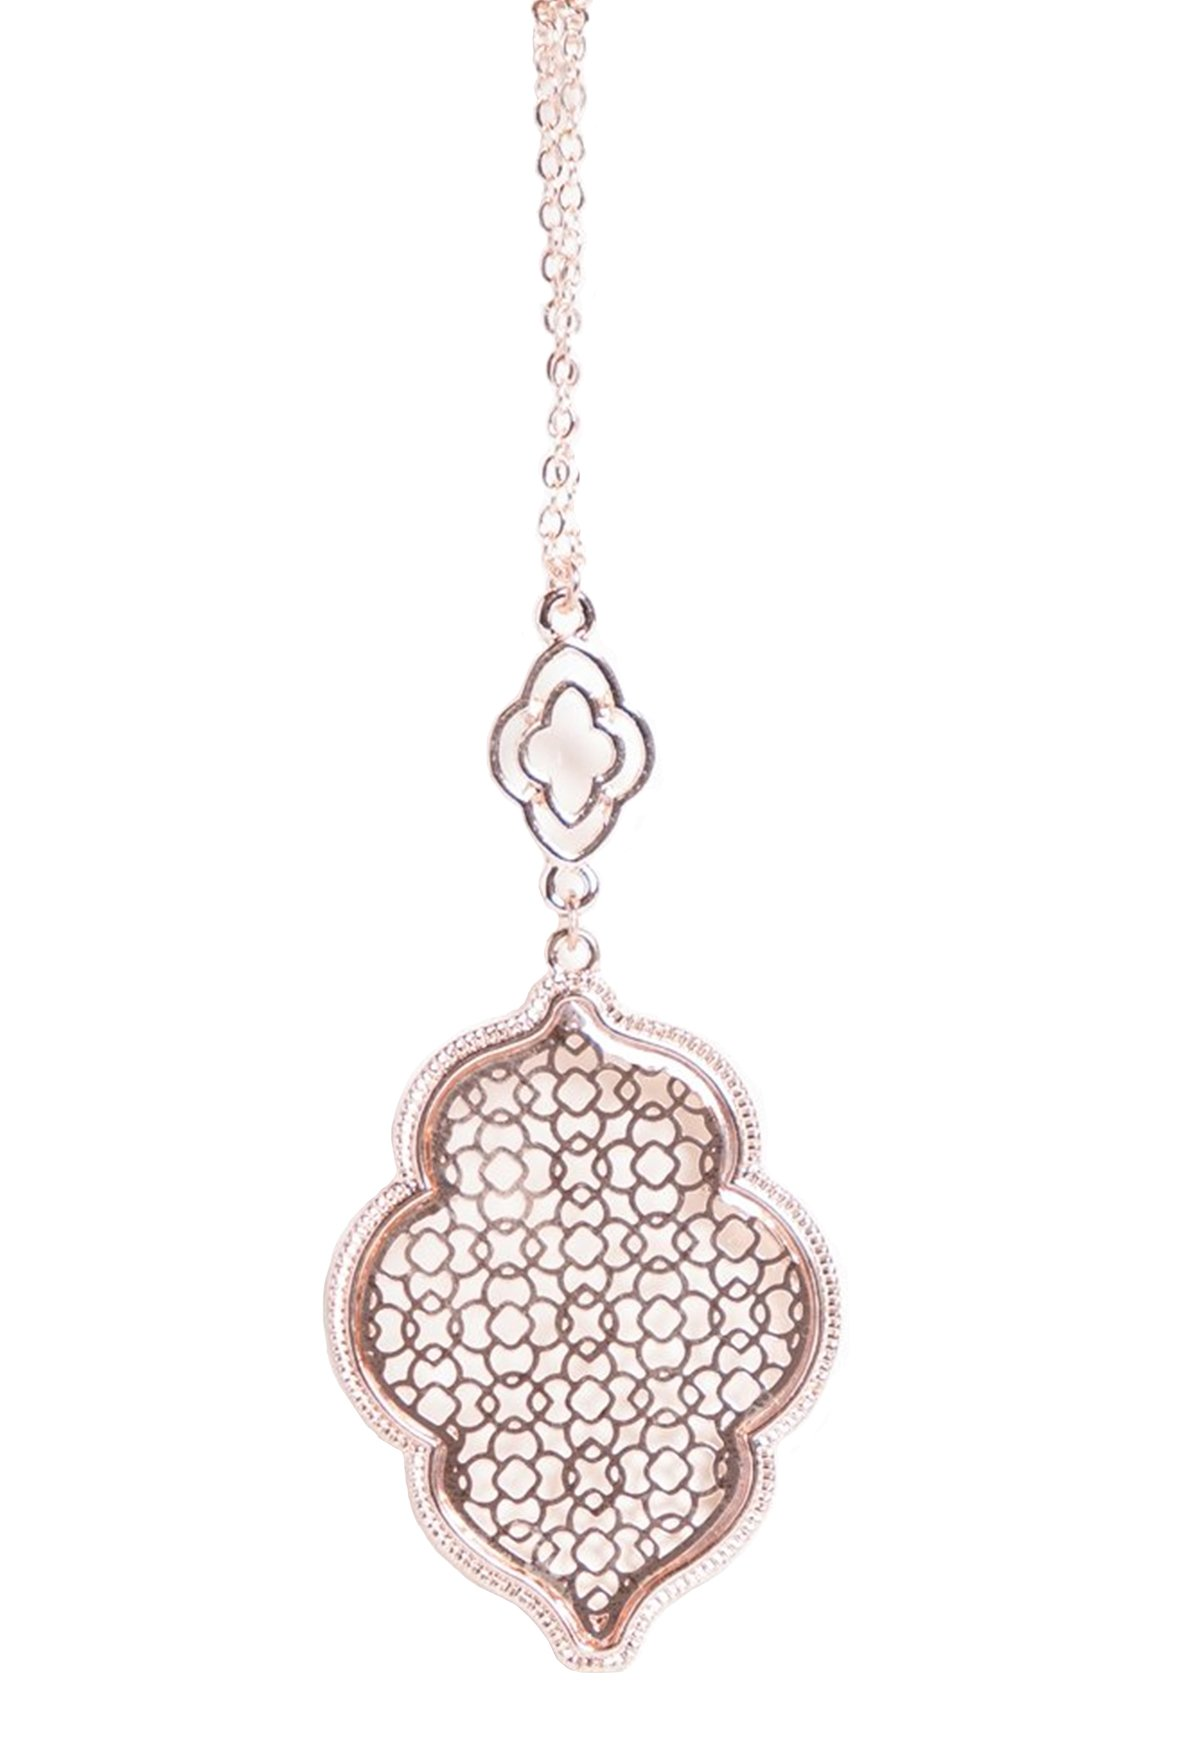 stylesilove Womens Trendy Two-Tone Cut Off Filigree Quatrefoil Long Chain Pendant Necklace Dangle Earring (Rose Gold/Necklace)